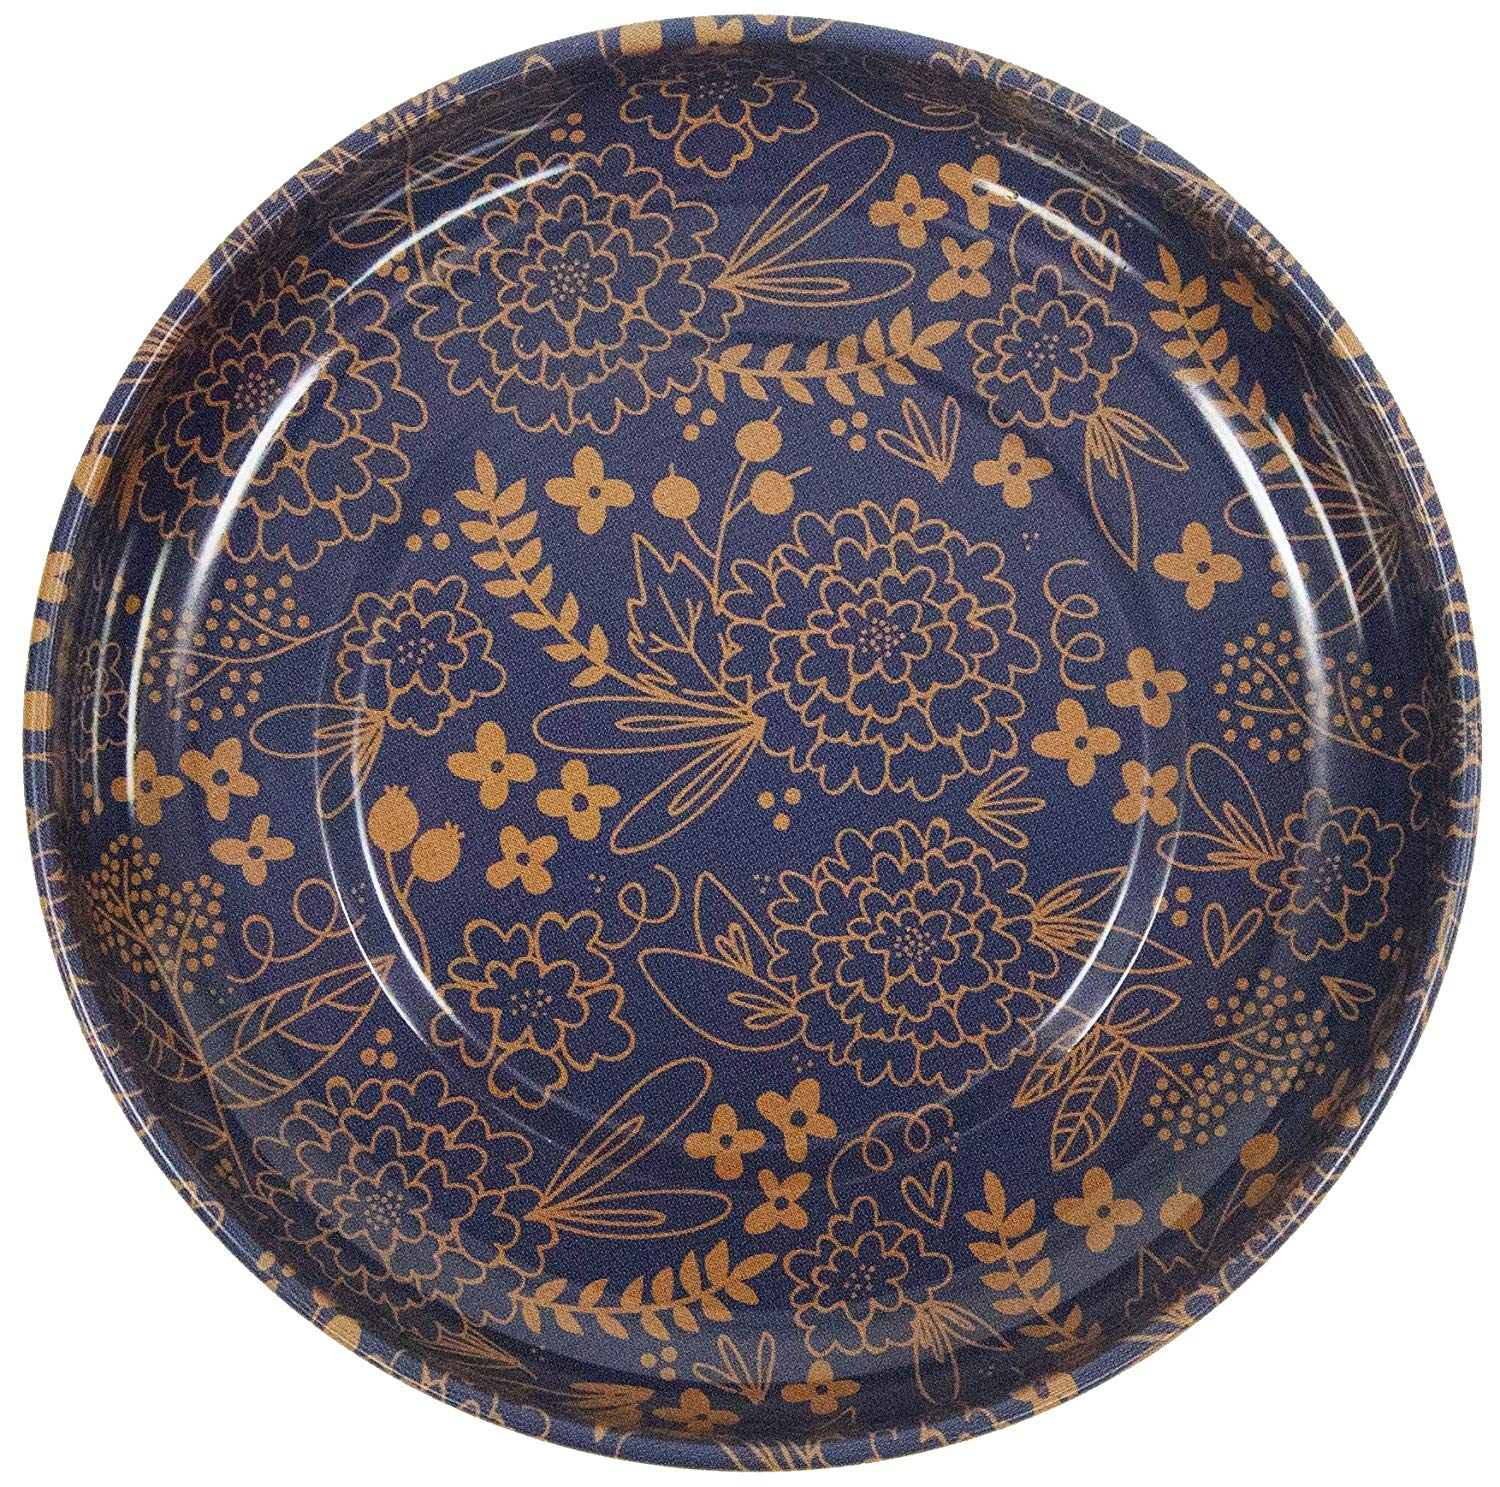 gifts-for-quilters-pin-bowl